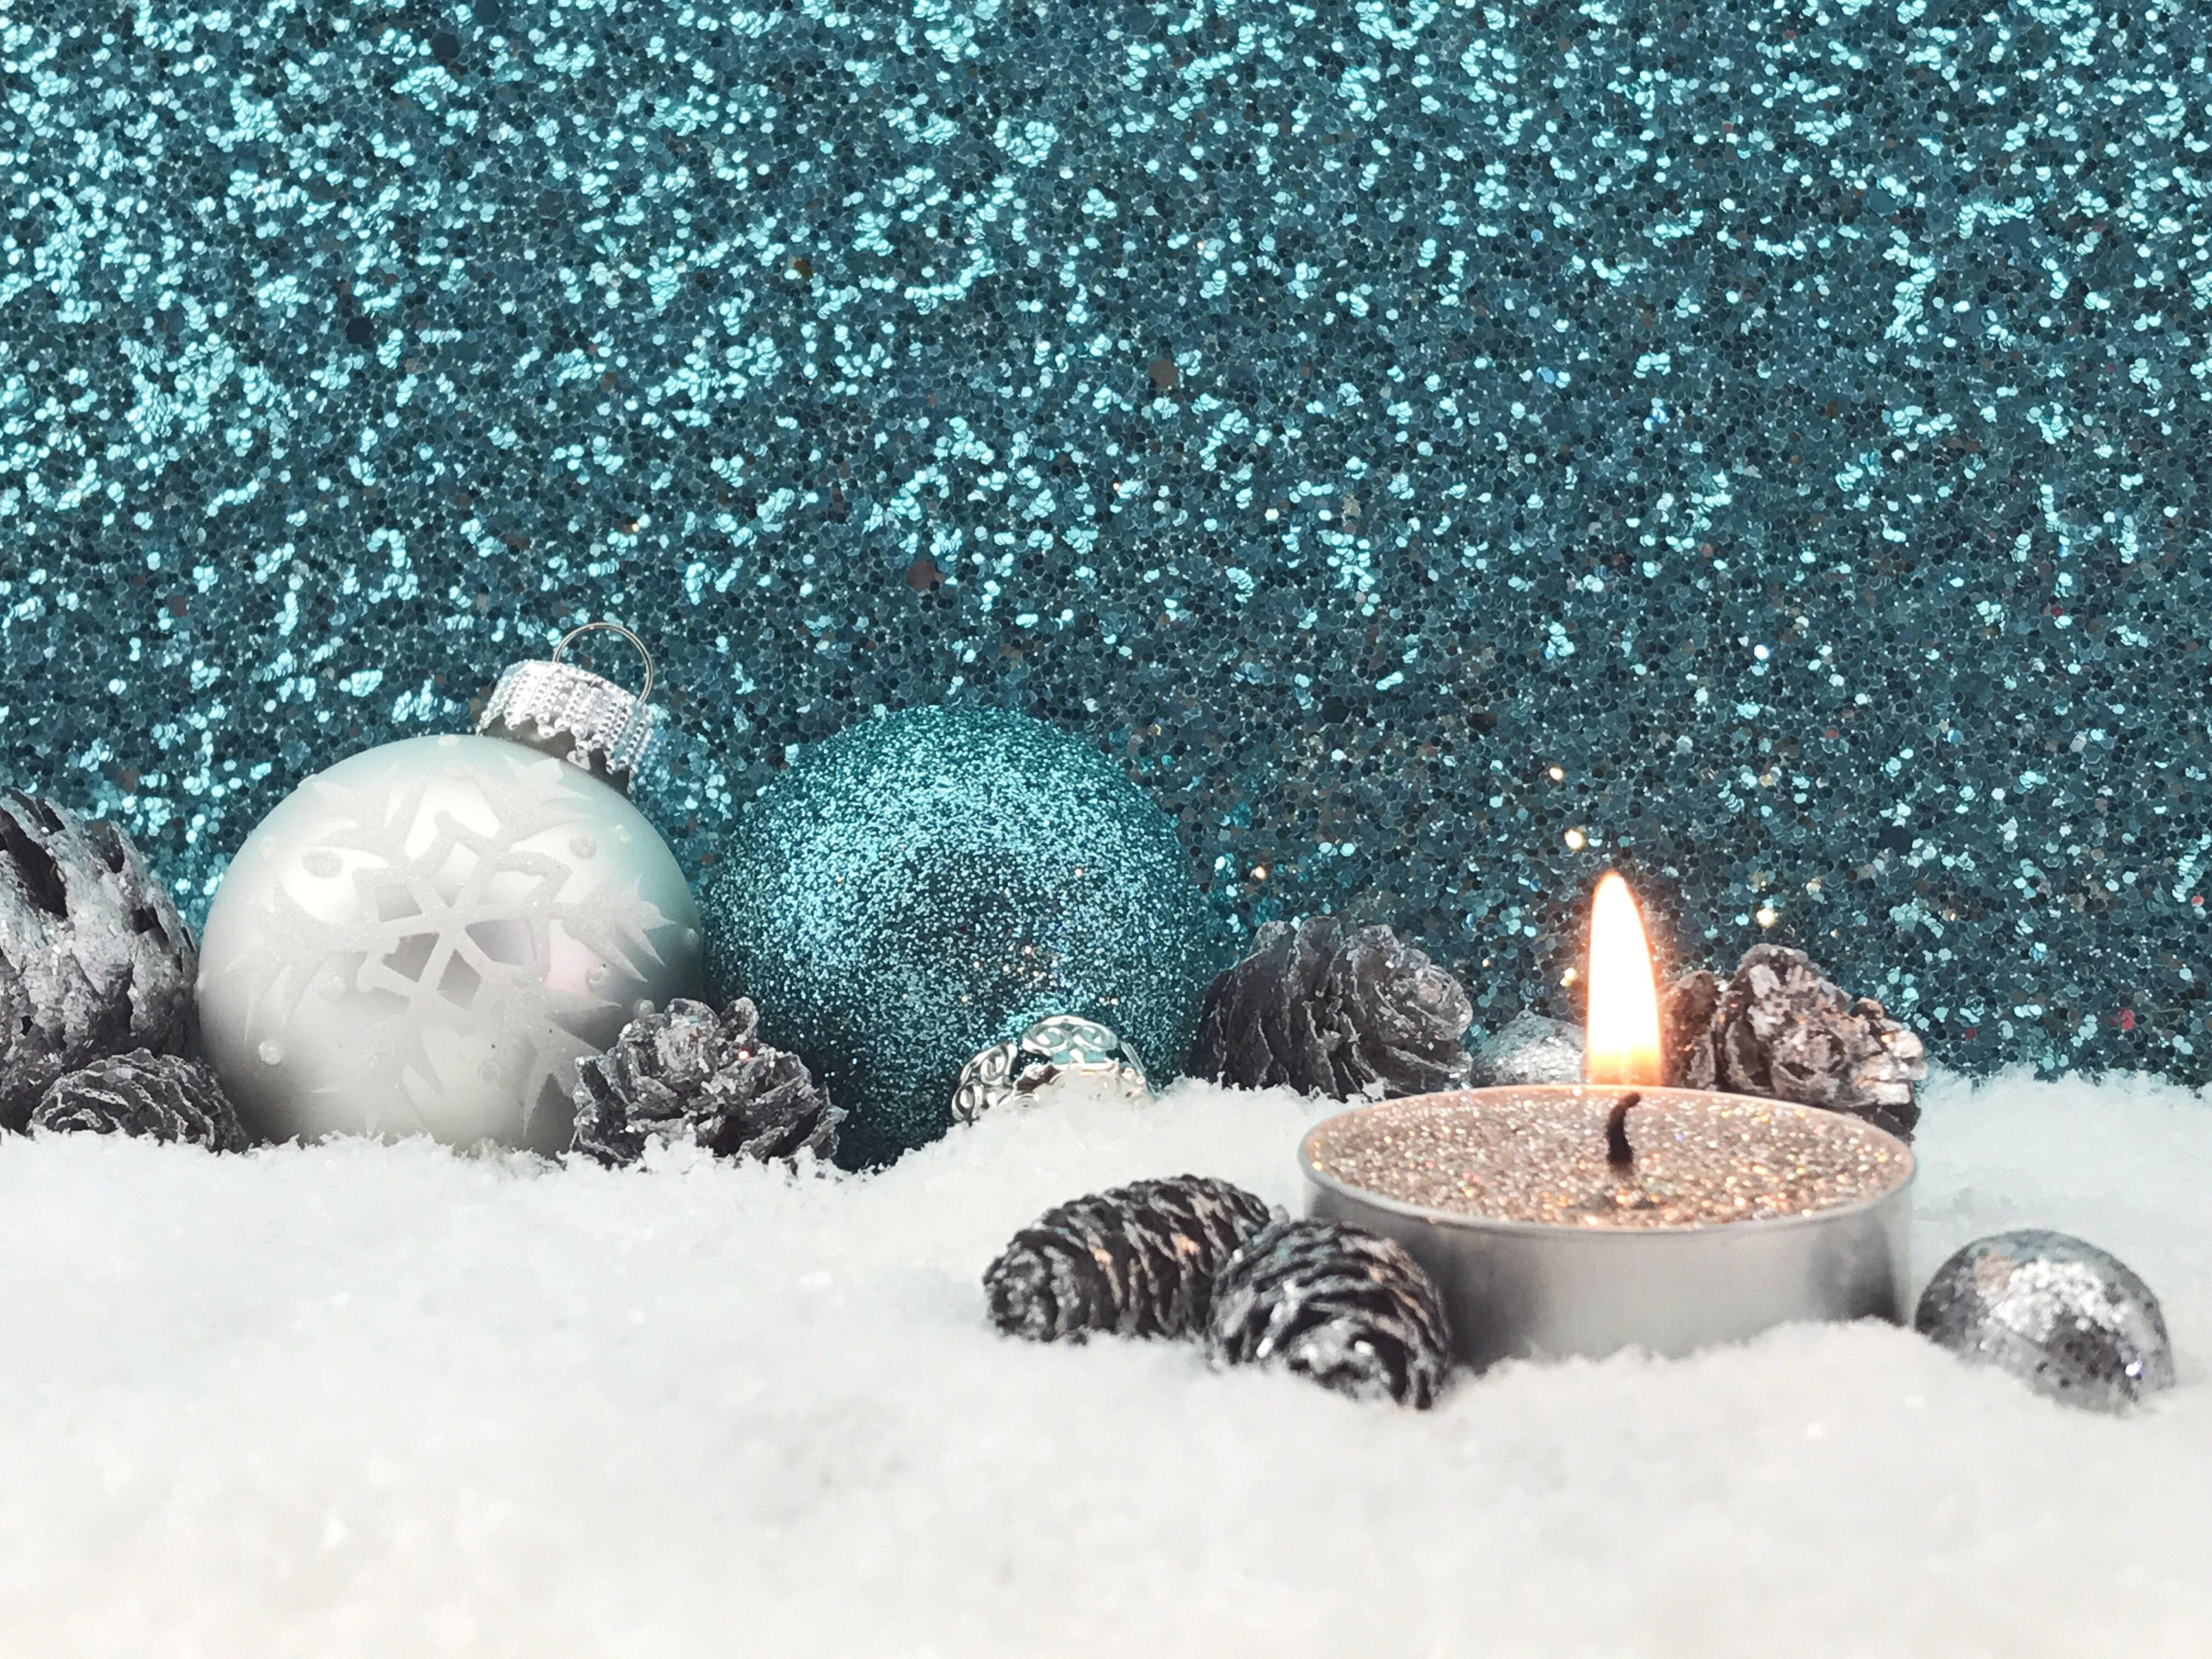 Lit Candle With Christmas Decoration On Fake Snow Against Glittering Wall